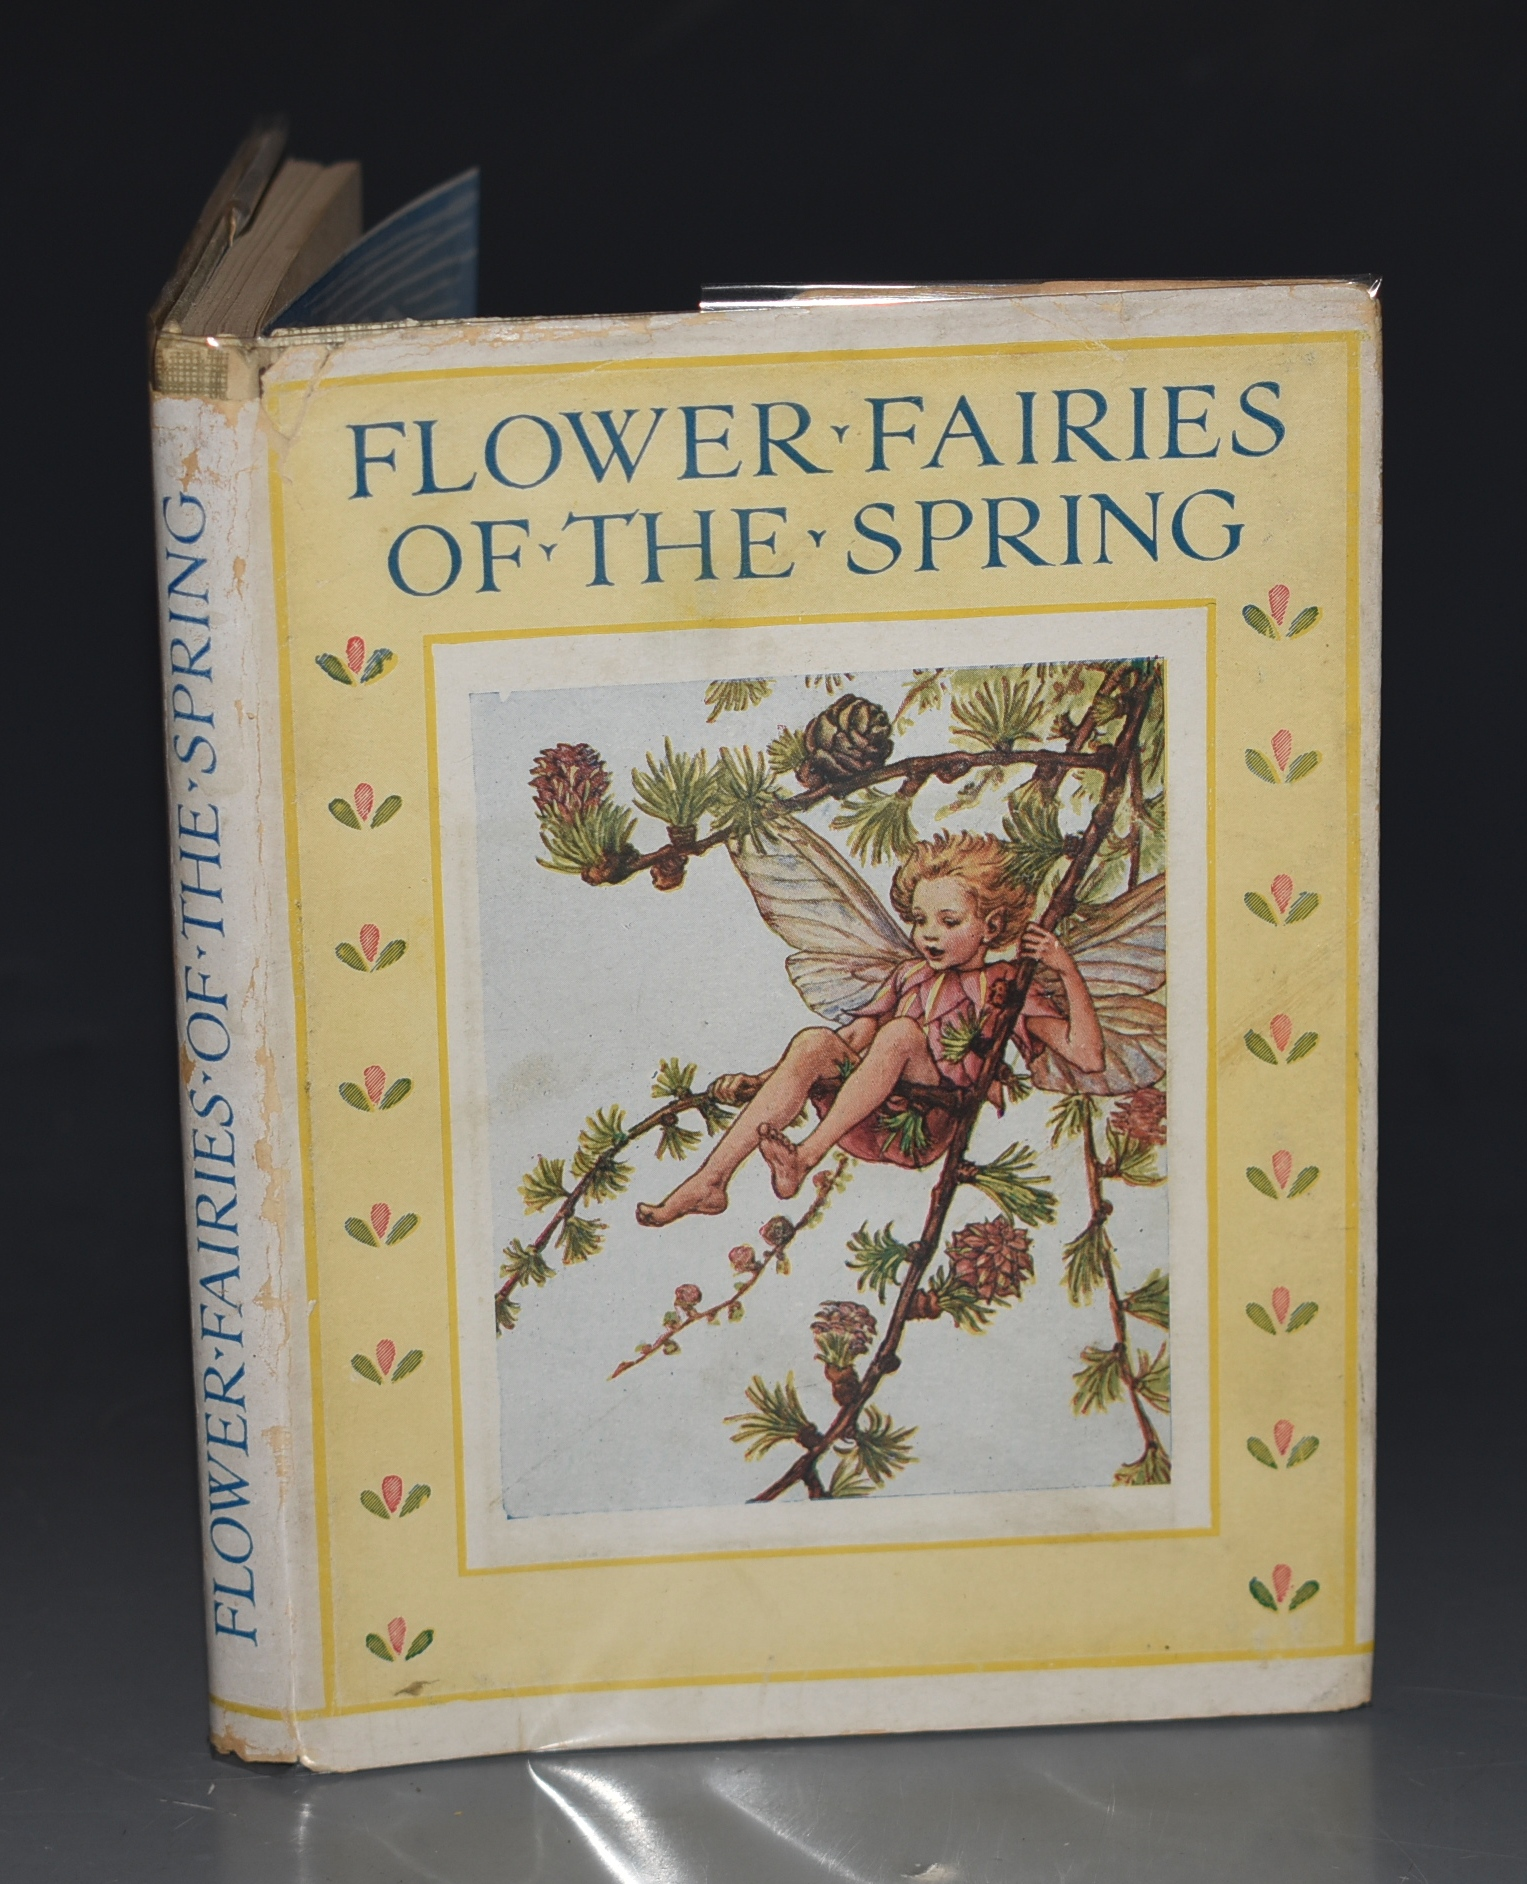 Image for Flower Fairies of the Spring. Poems and Pictures by Cicely Mary Barker.